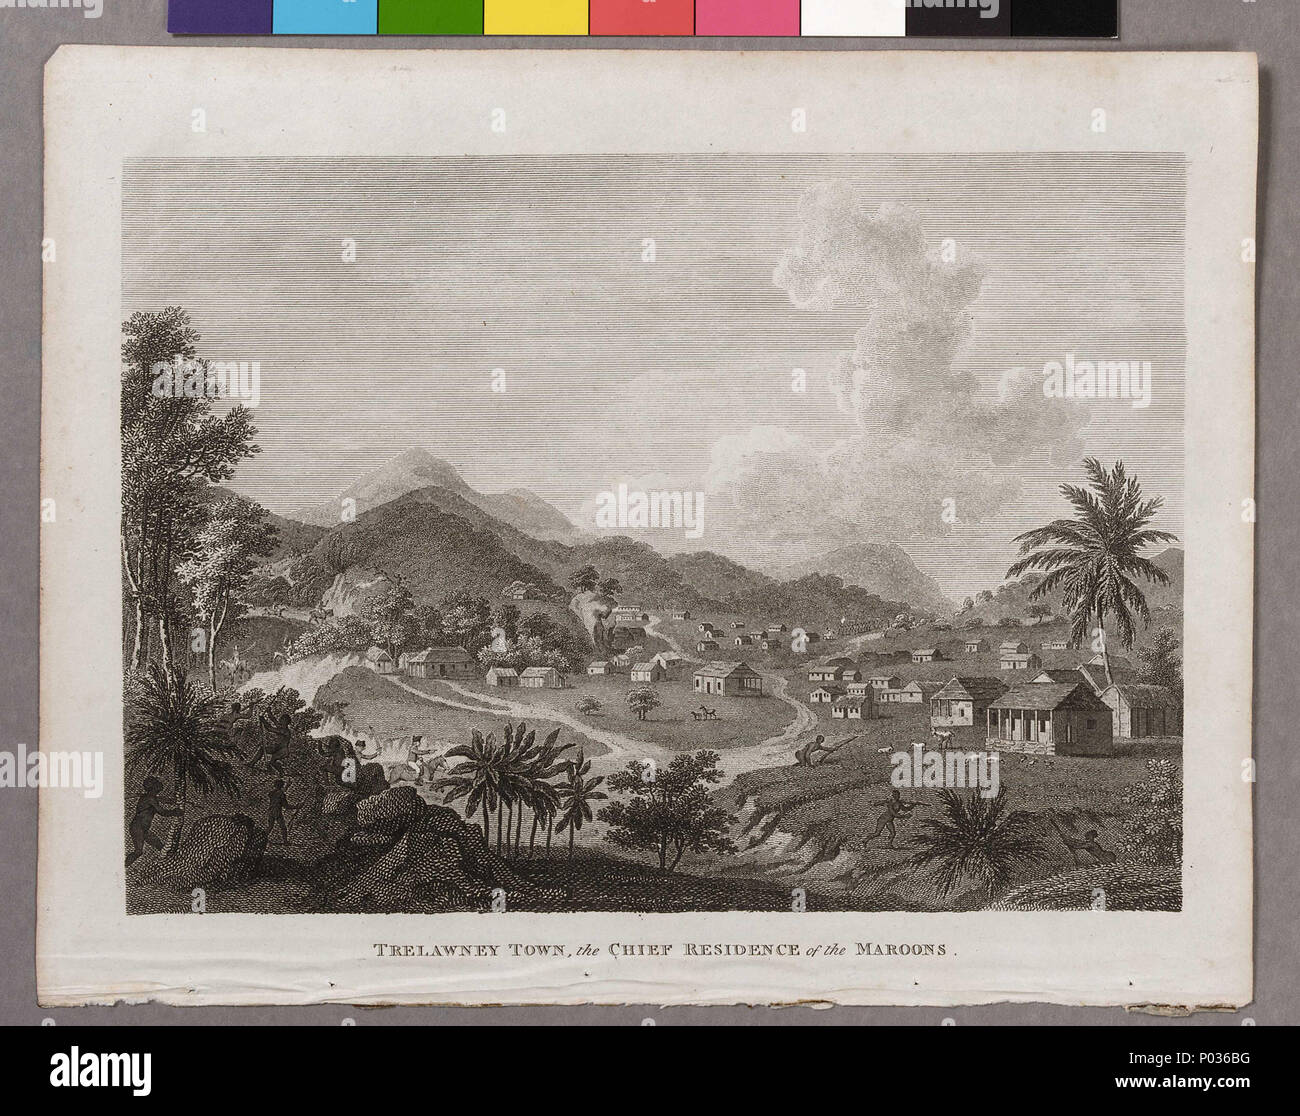 English: 'Trelawney Town, the Chief Residence of the Maroons